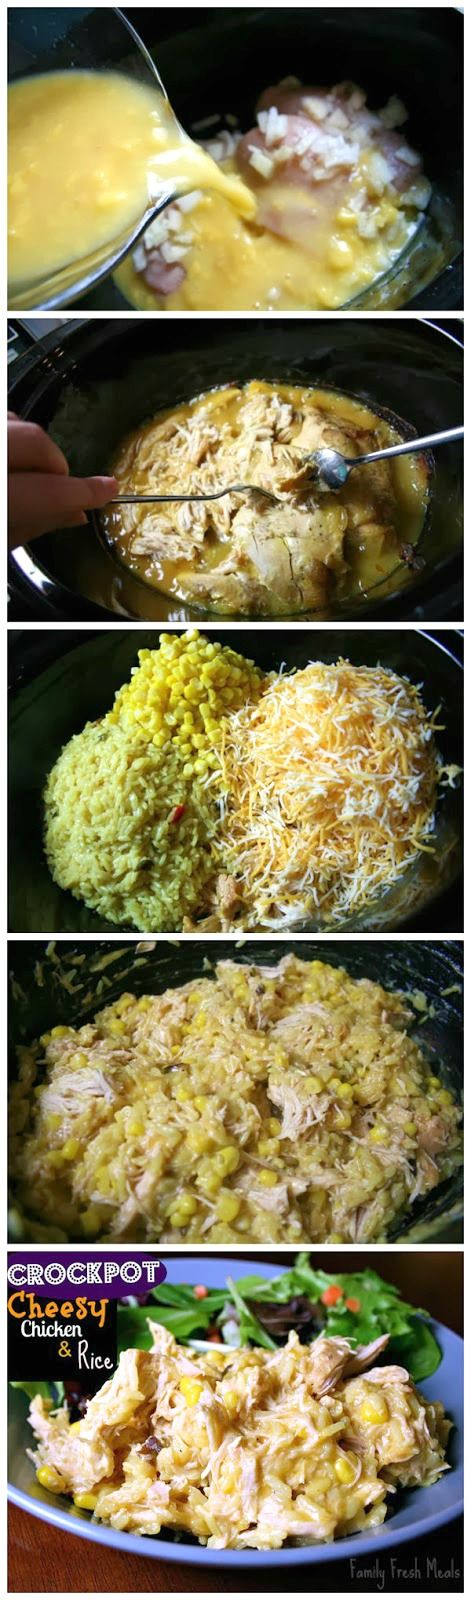 Crockpot cheesy chicken rice recipe soups the rice for Best dinner recipes ever